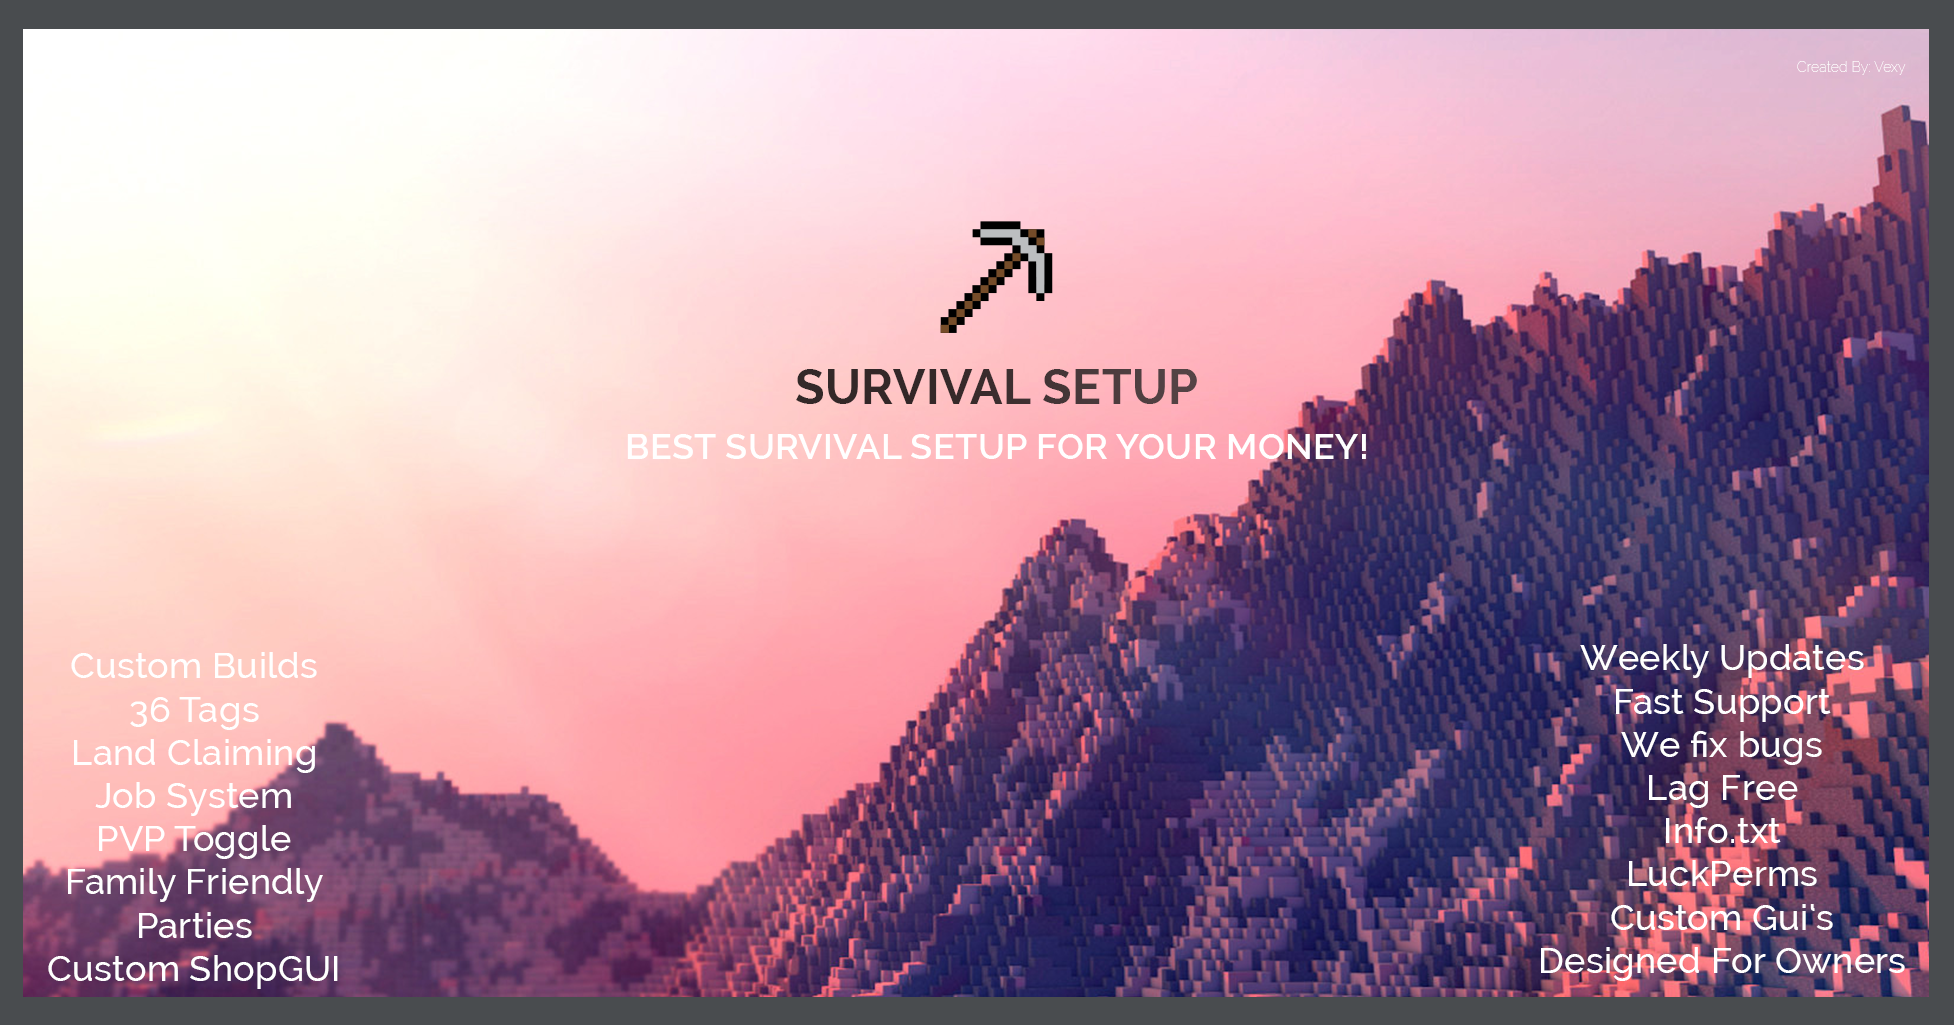 ♧♧ Professional Survival Setup | Tags, ShopGUI+, LuckPerms